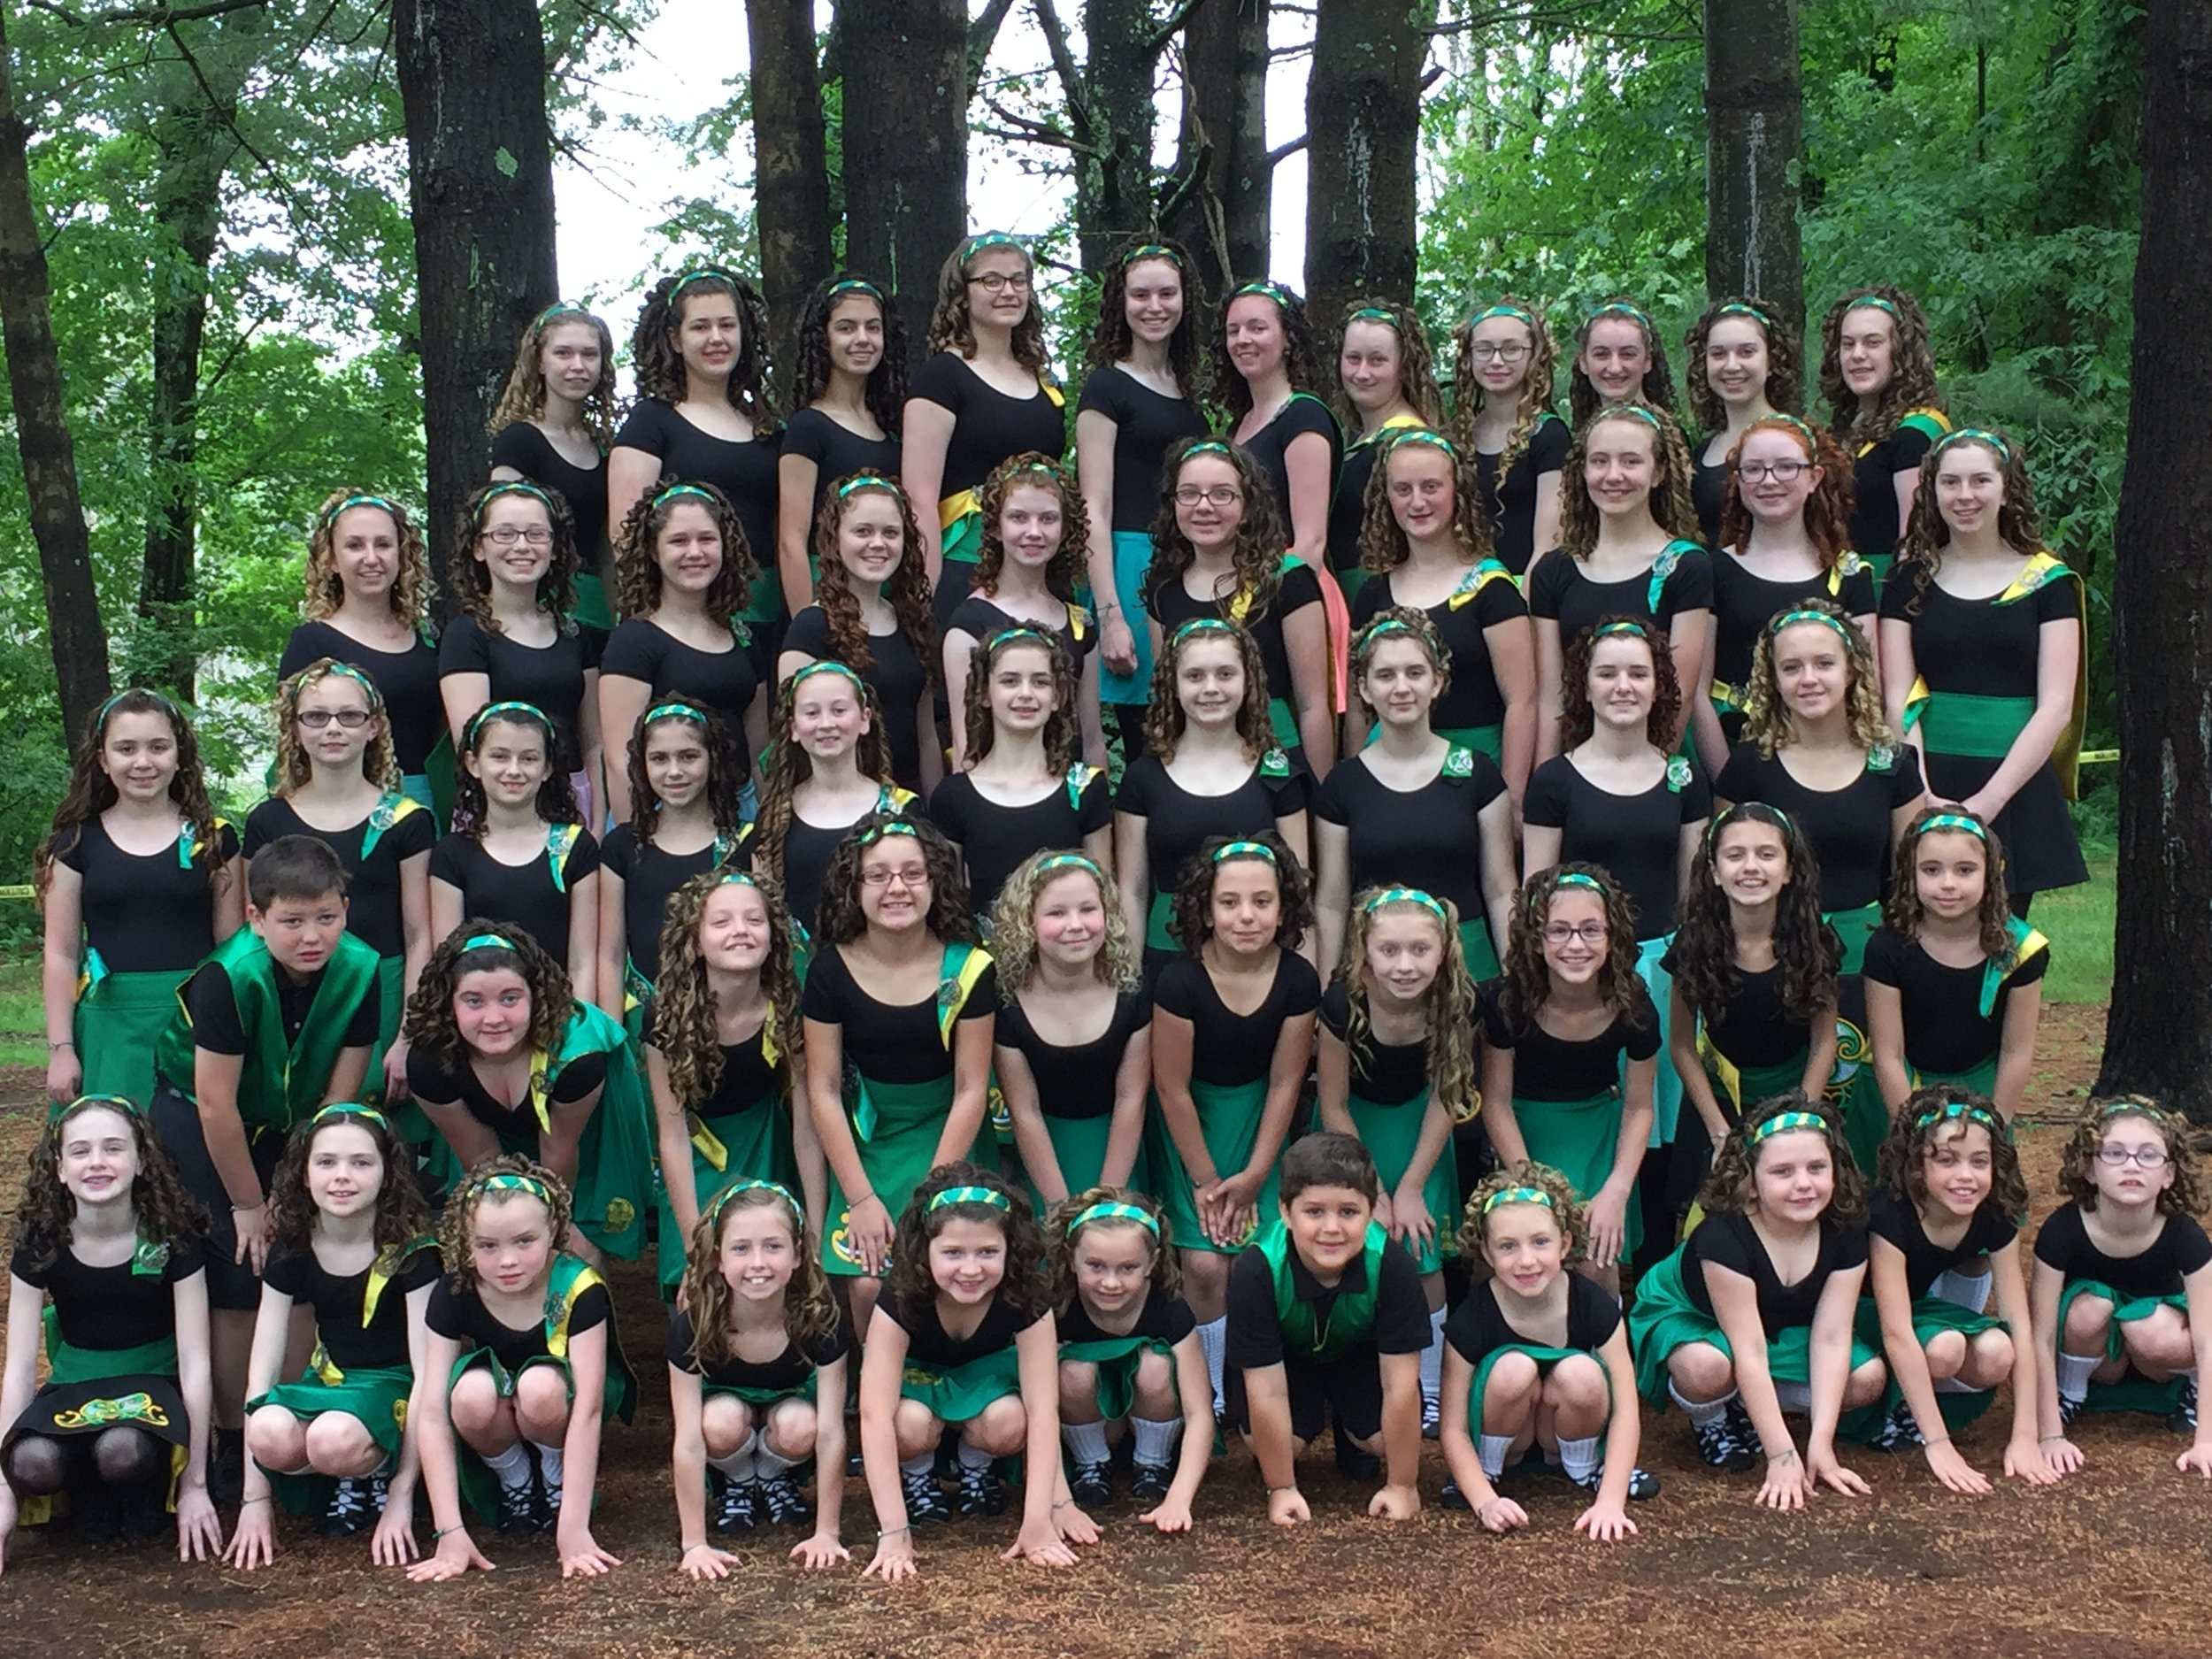 2017 - Tir Na Nog Irish Dance proudly participated in their 6th year dancing at Blackstone River Theatre's Summer Solstice Festival!